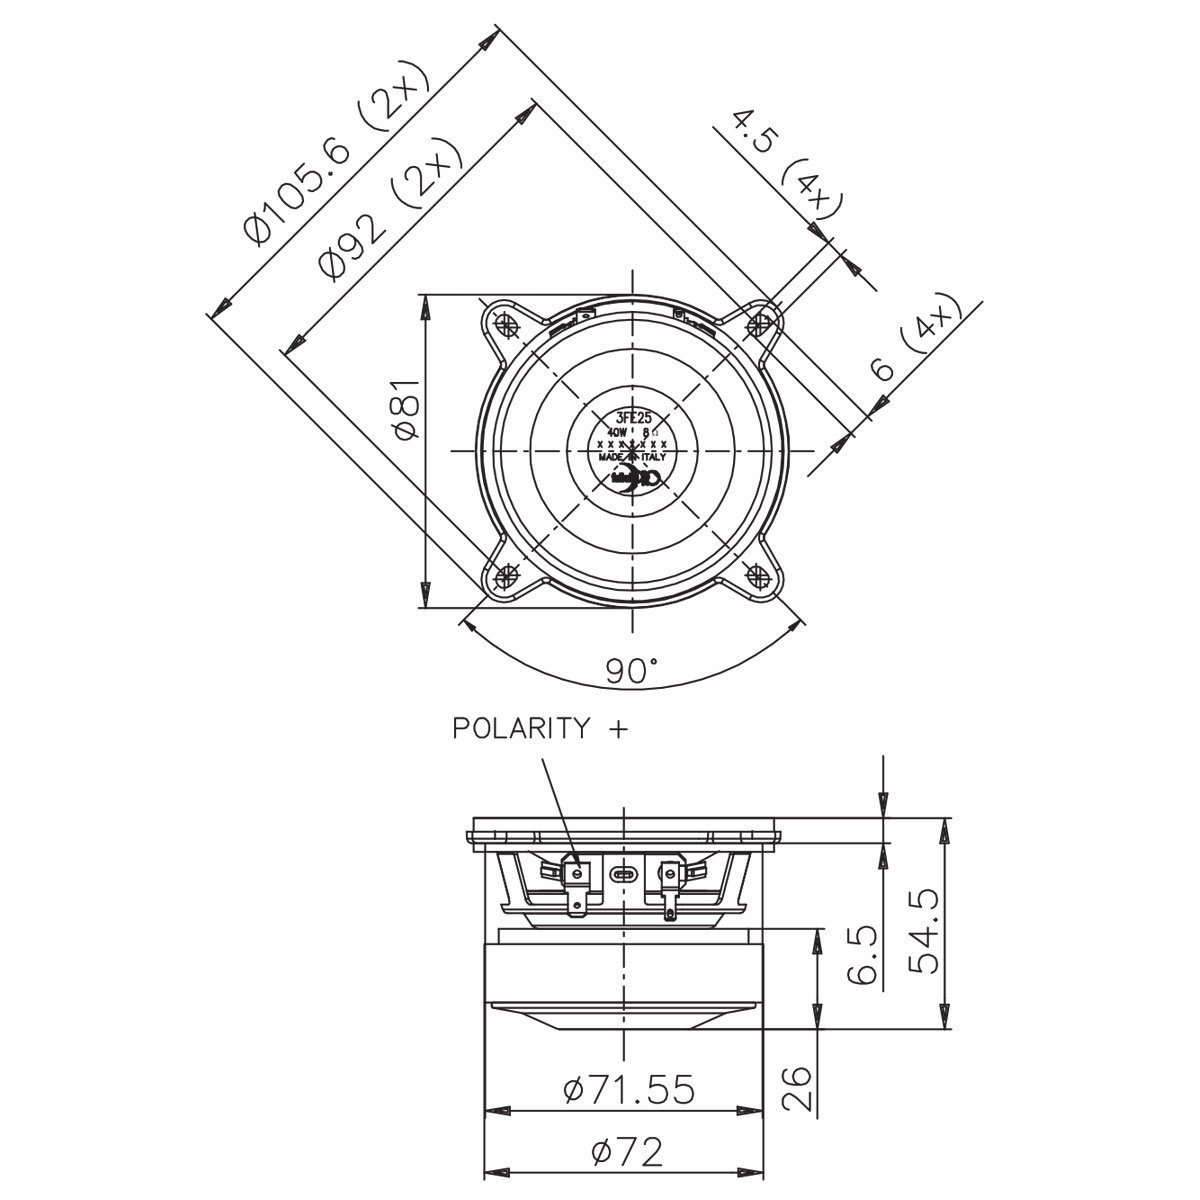 dvc sub wiring diagram with Kicker L7 12 Wiring Diagram on Kicker L7 12 Wiring Diagram besides Dual Voice Coil Wiring Diagram together with Wiring Diagram For Sub And in addition Sub   guide furthermore Single Voice Coil Wiring Diagram 4ohms.